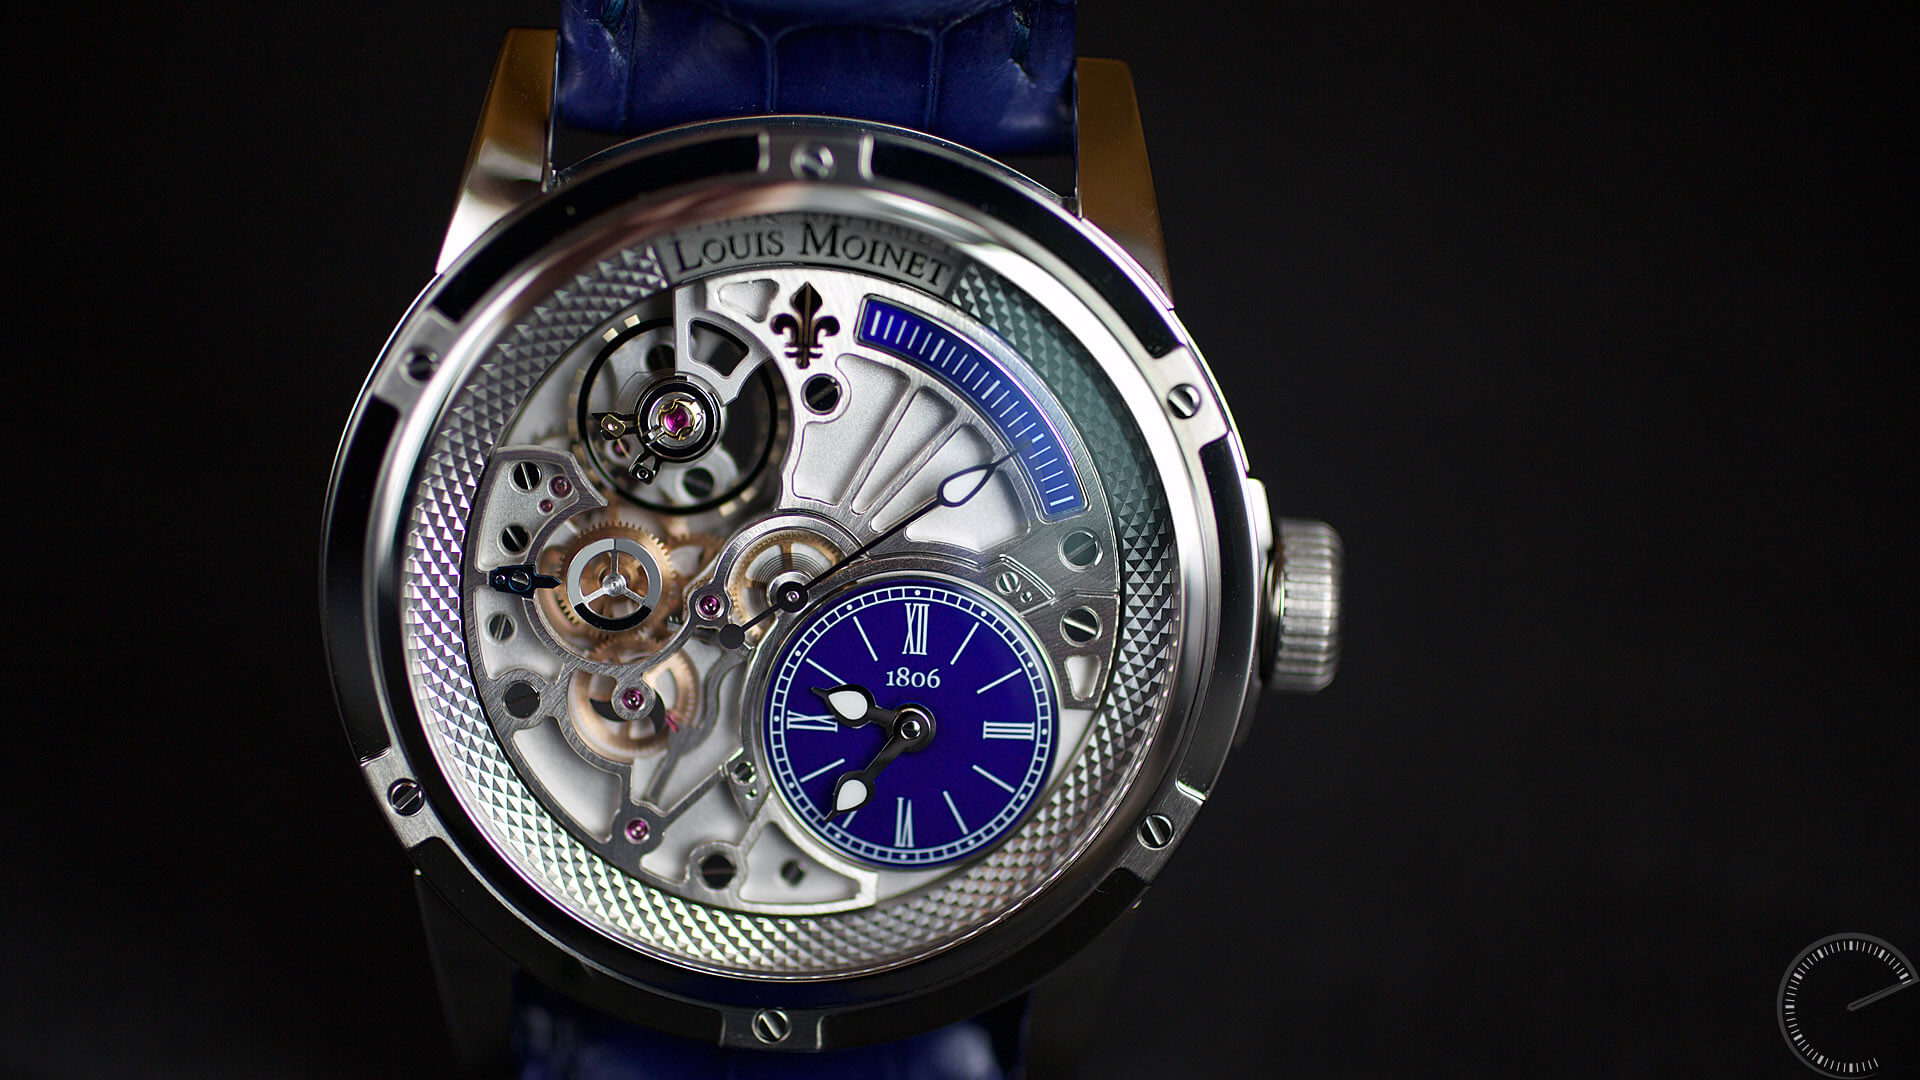 Louis moinet 20 second tempograph deep blue louis moinet watch review for Louis moinet watch